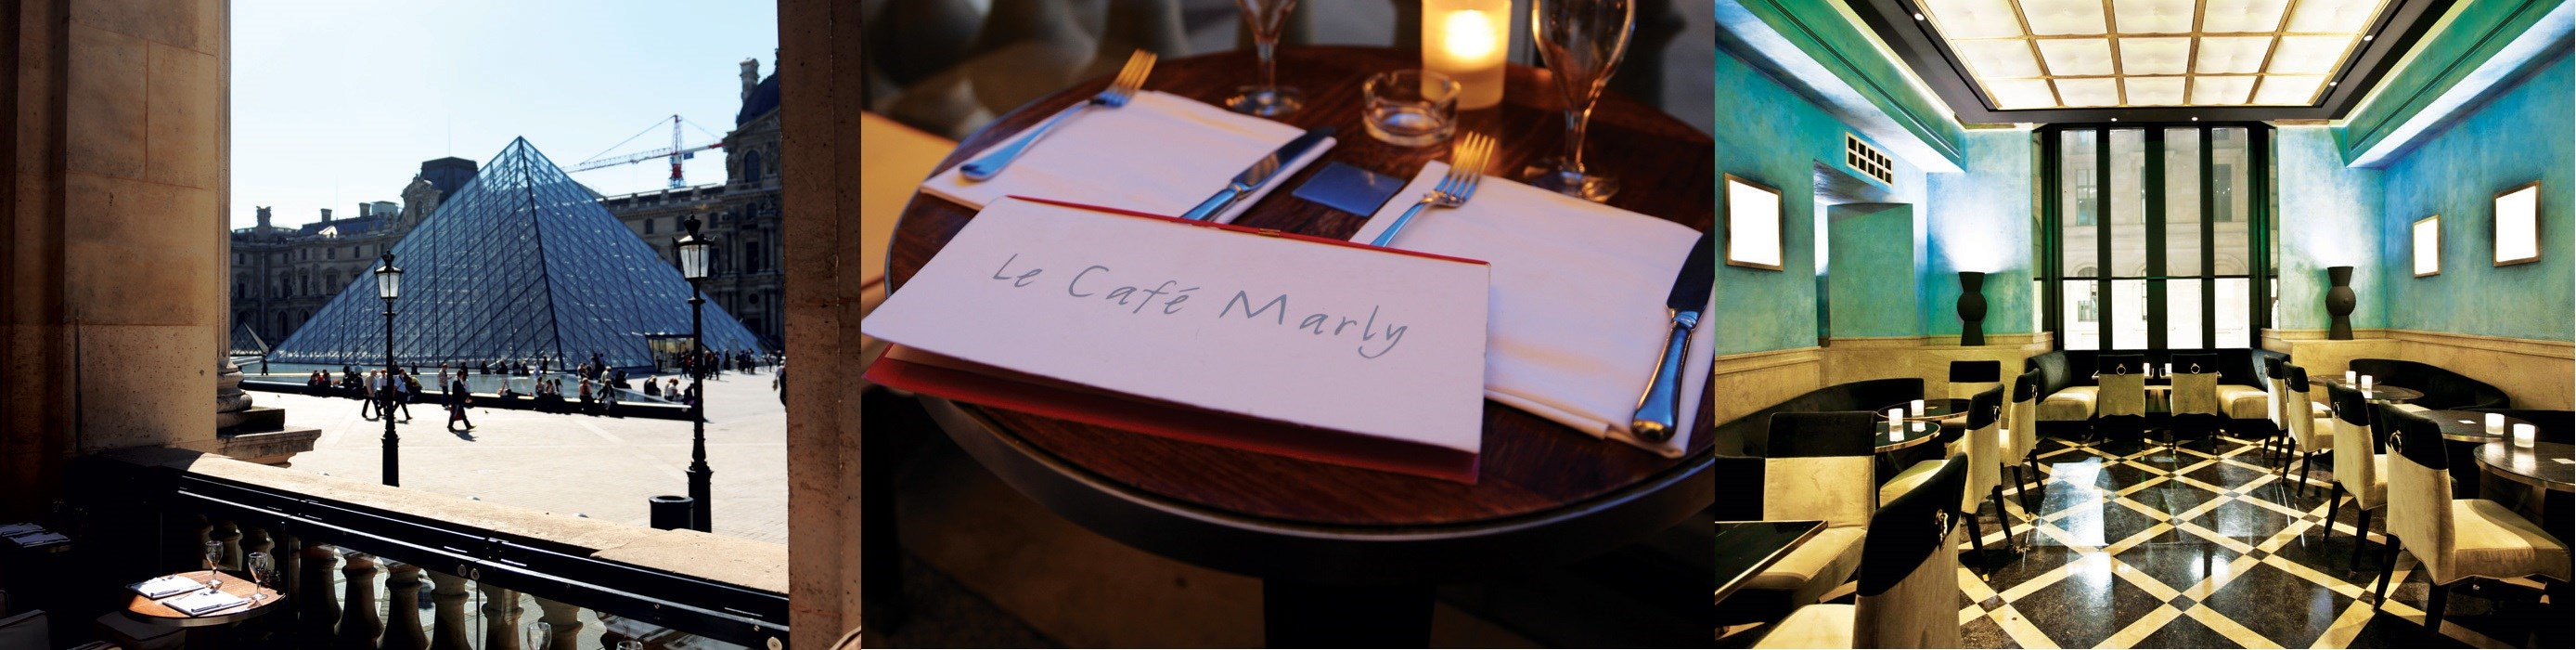 original_cafe-marly-paris.jpg